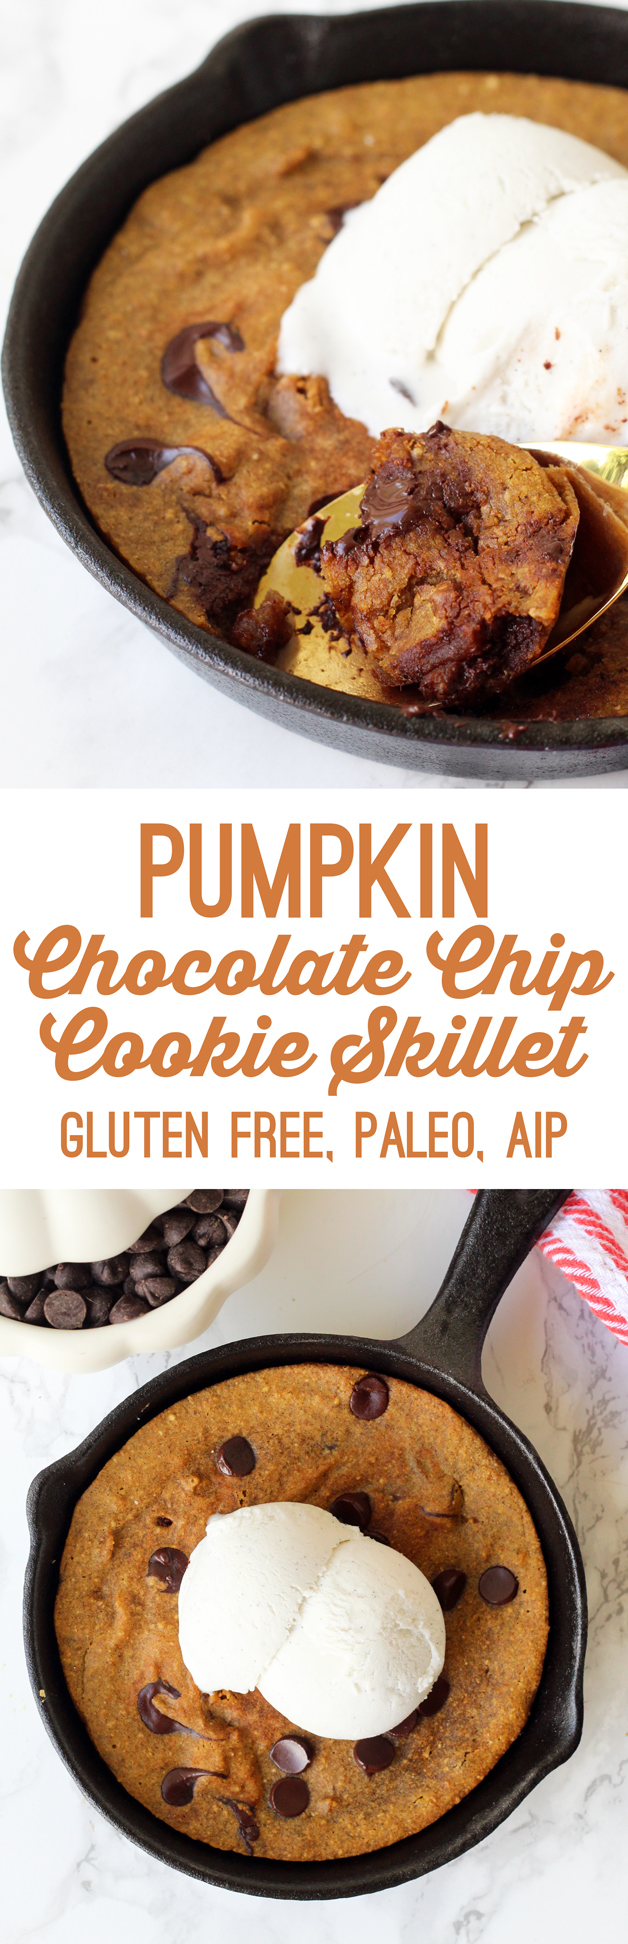 Paleo Pumpkin Chocolate Chip Cookie Skillet (AIP, Gluten Free)